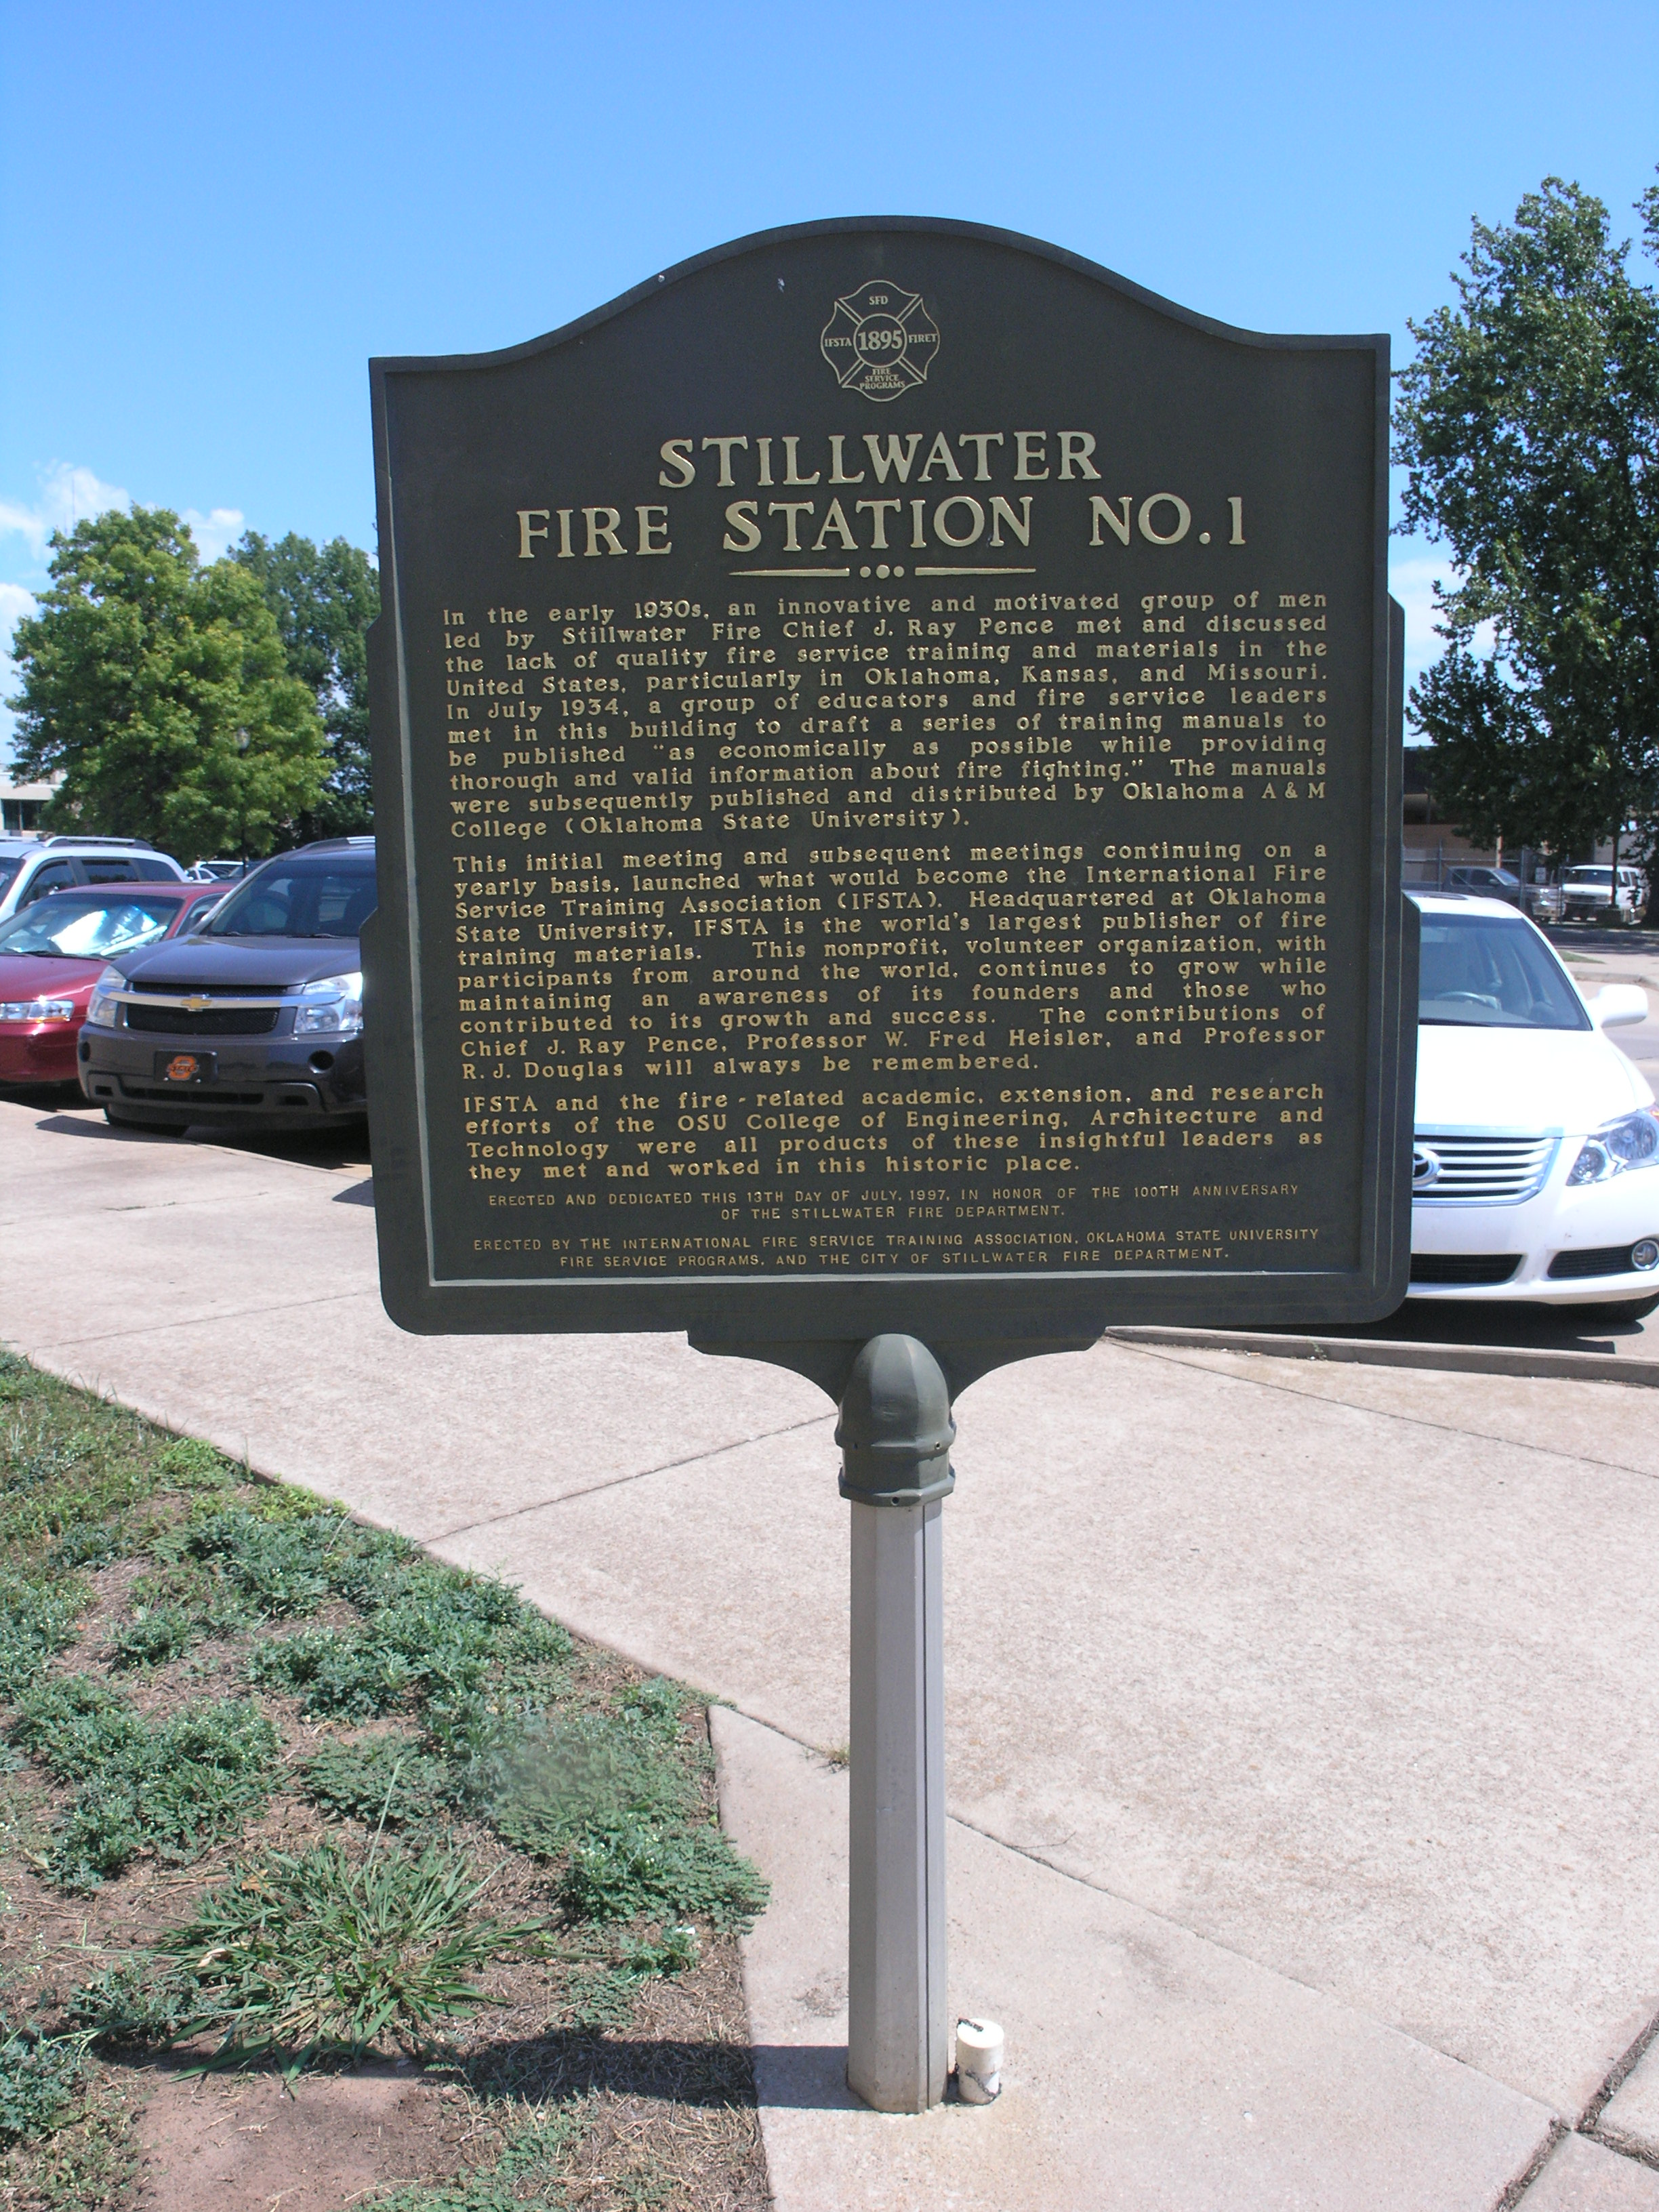 Exploring Oklahoma History: Stillwater Fire Station No. 1